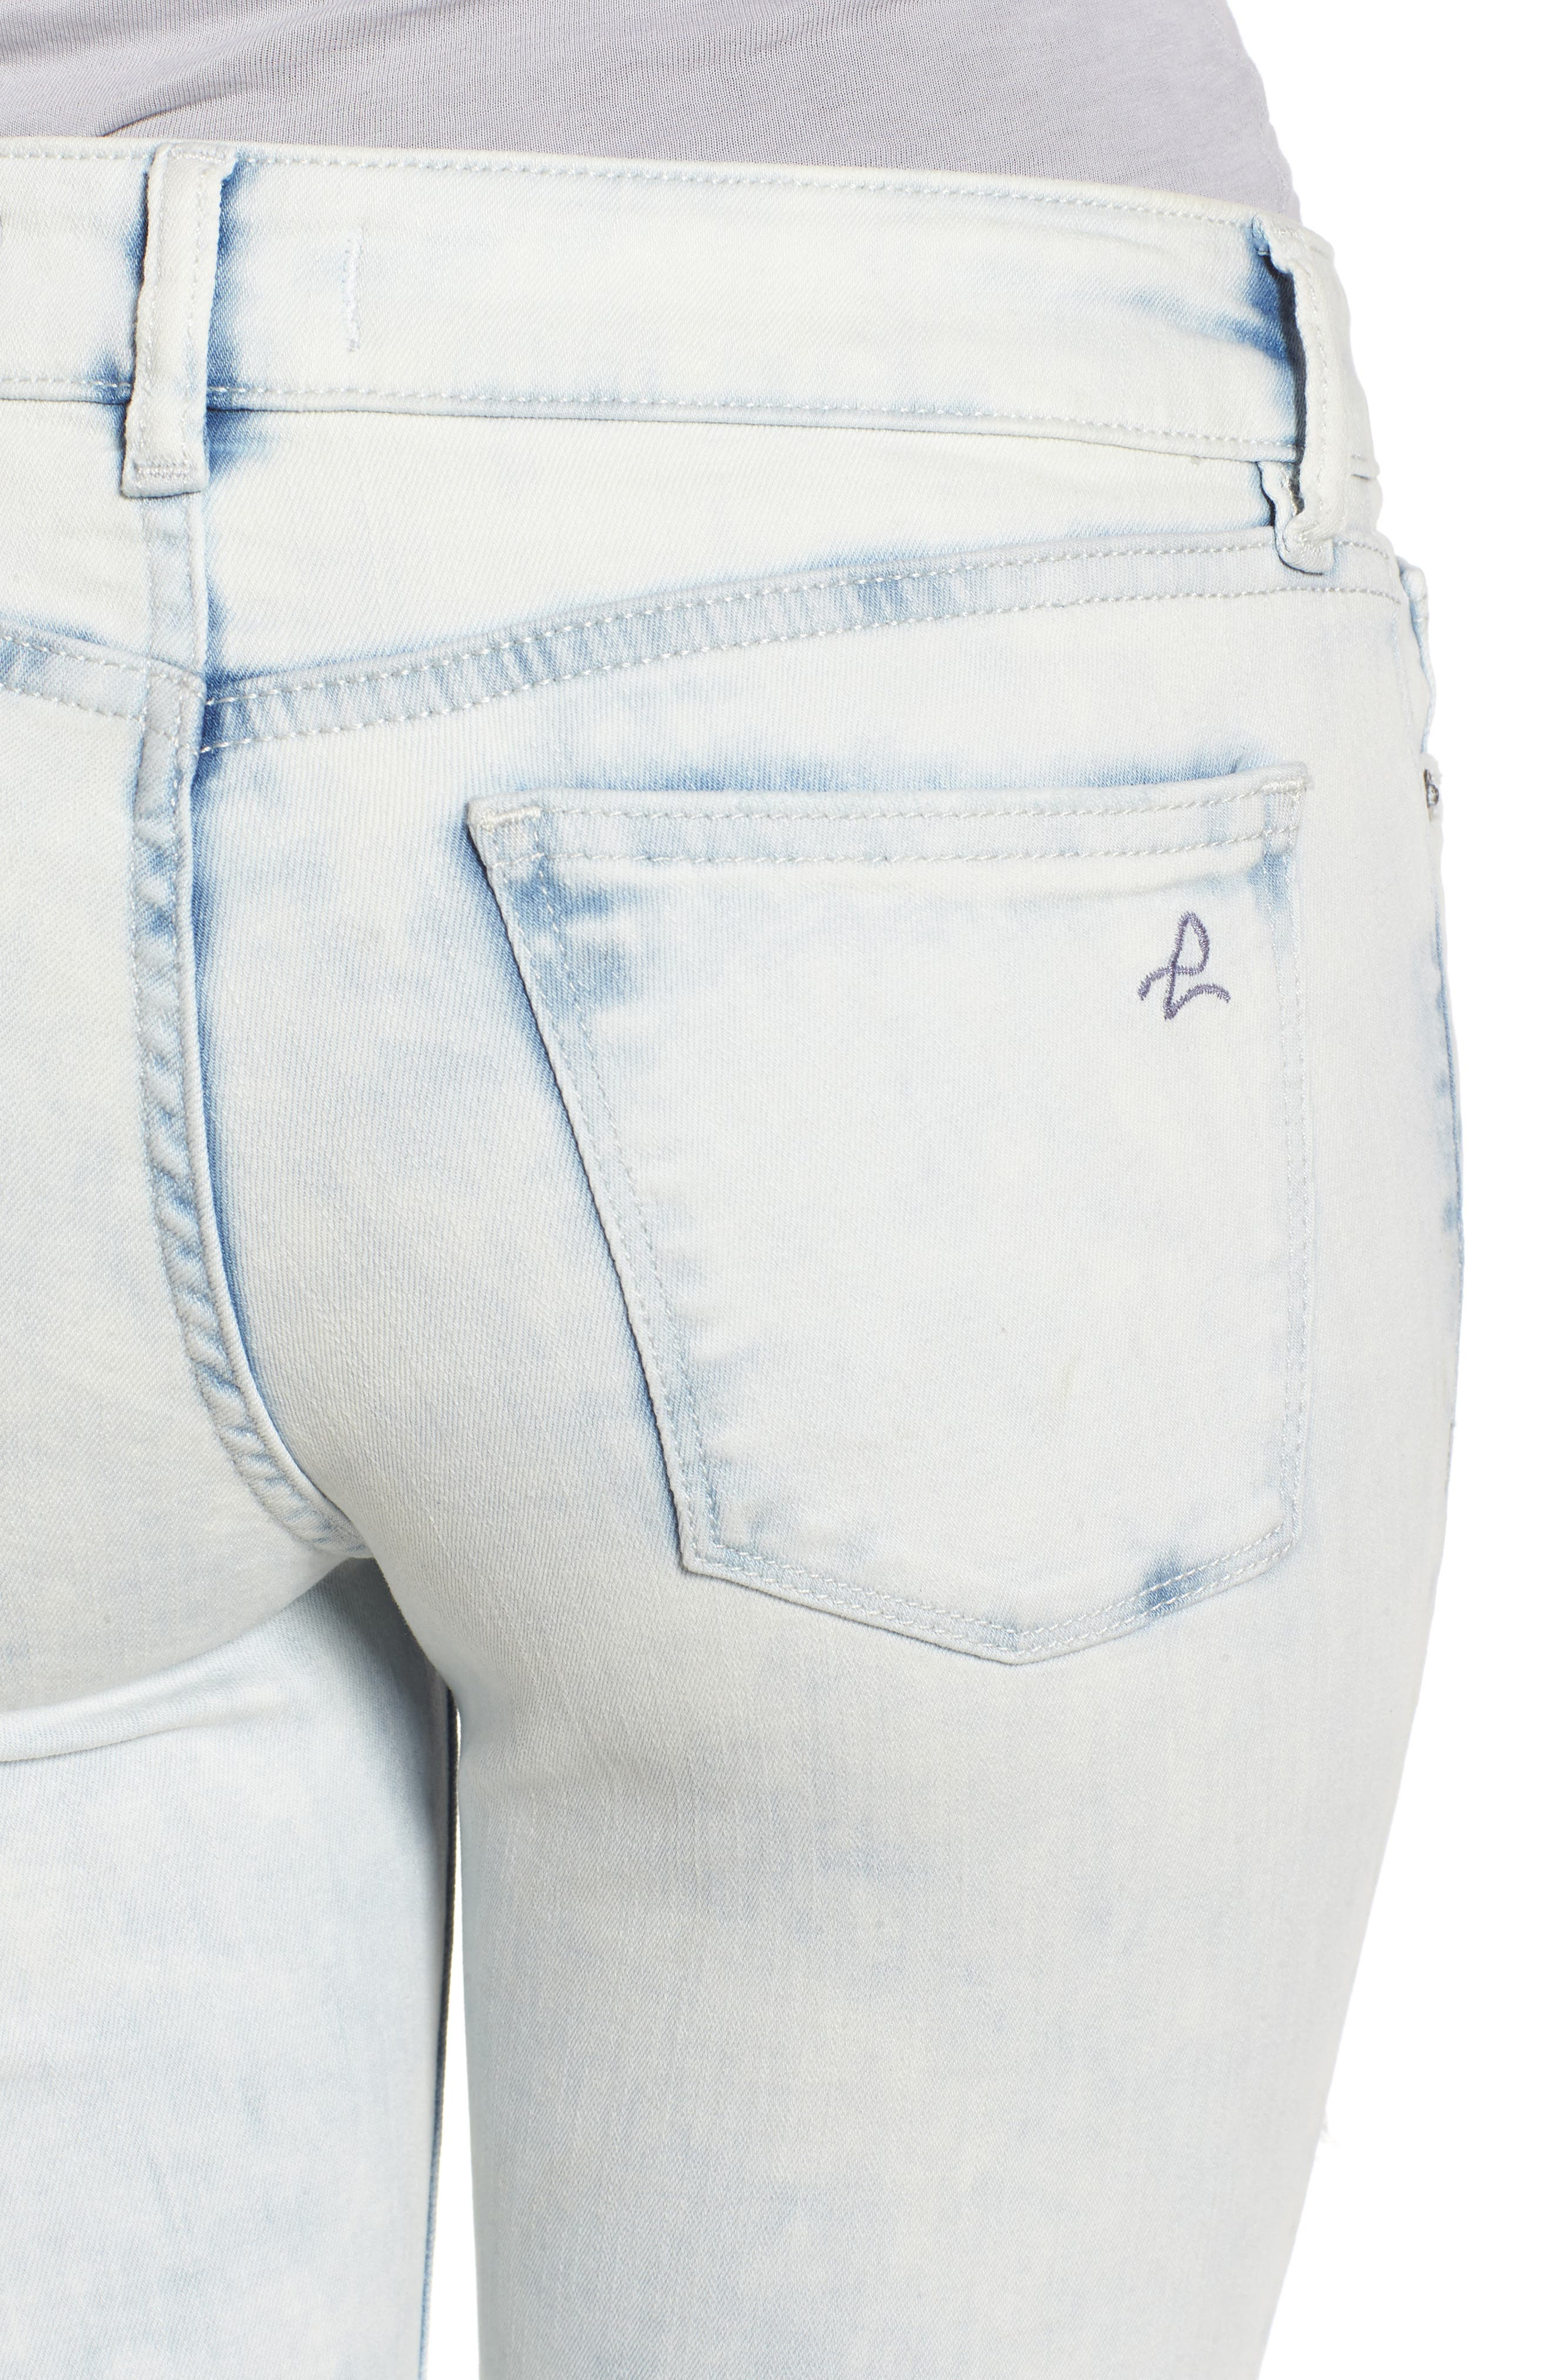 Florence Instasculpt Crop Skinny Jeans,                             Alternate thumbnail 4, color,                             Mitchell